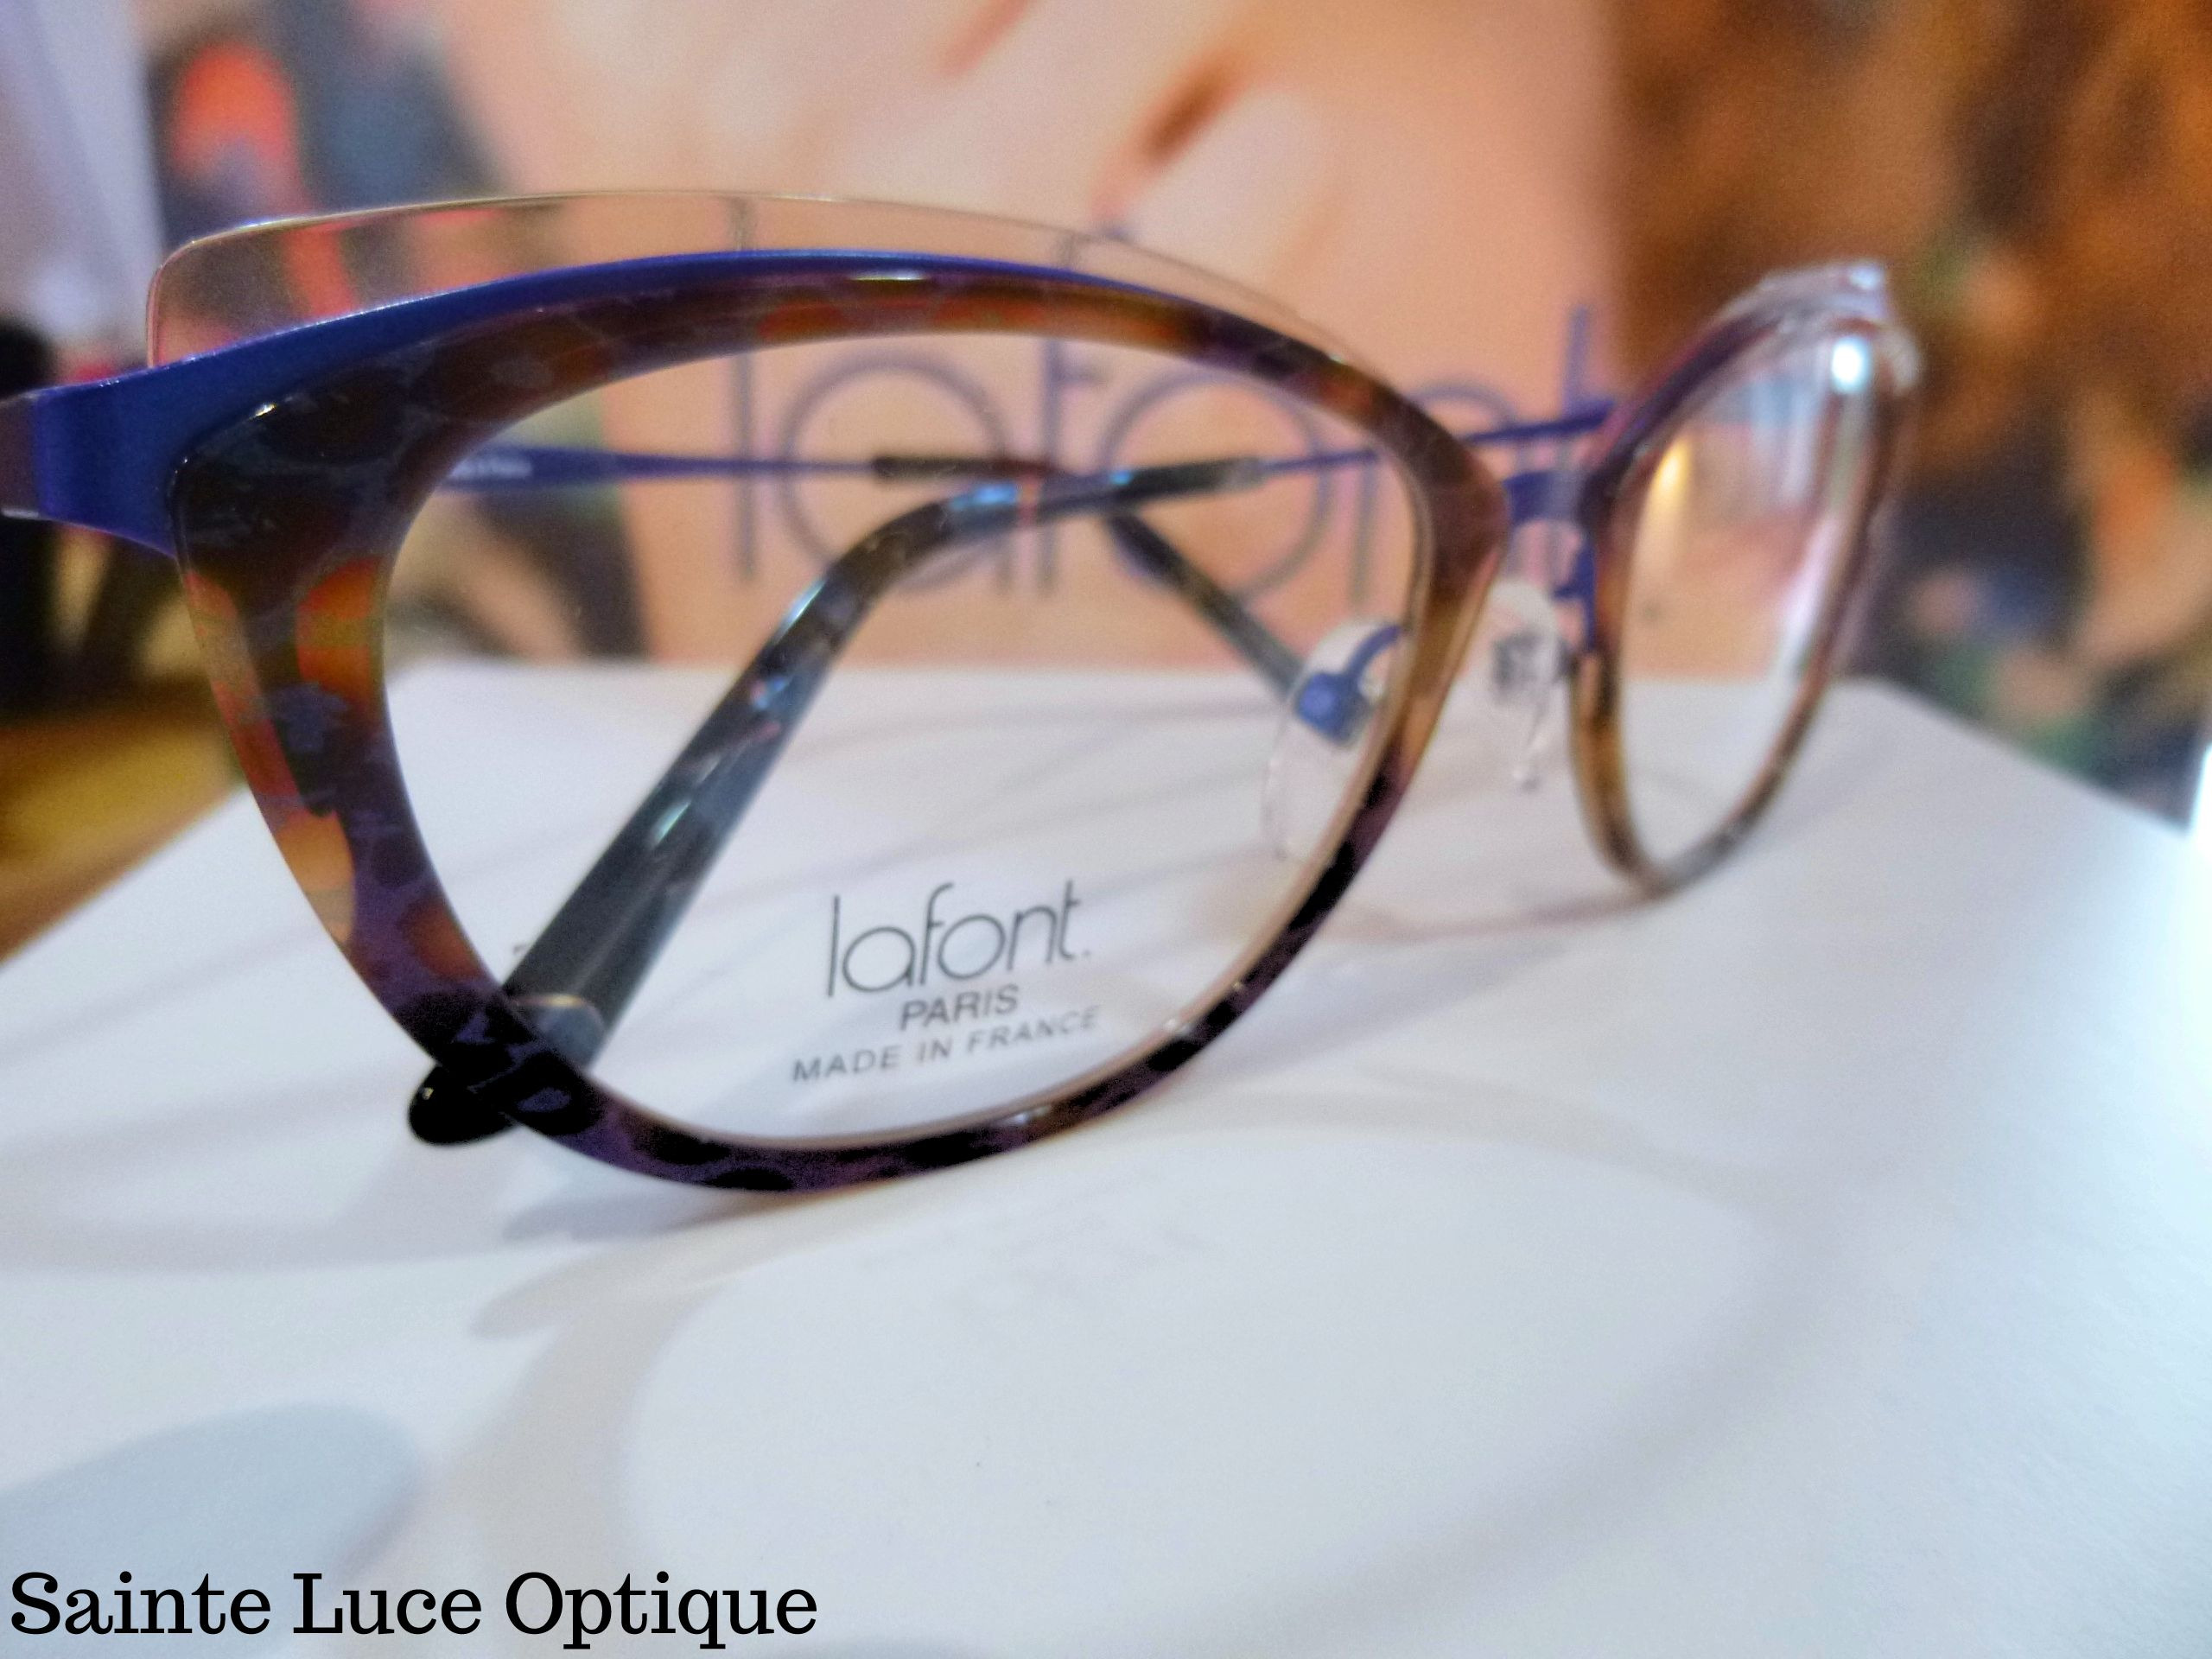 Lafont! Le Style made in France!